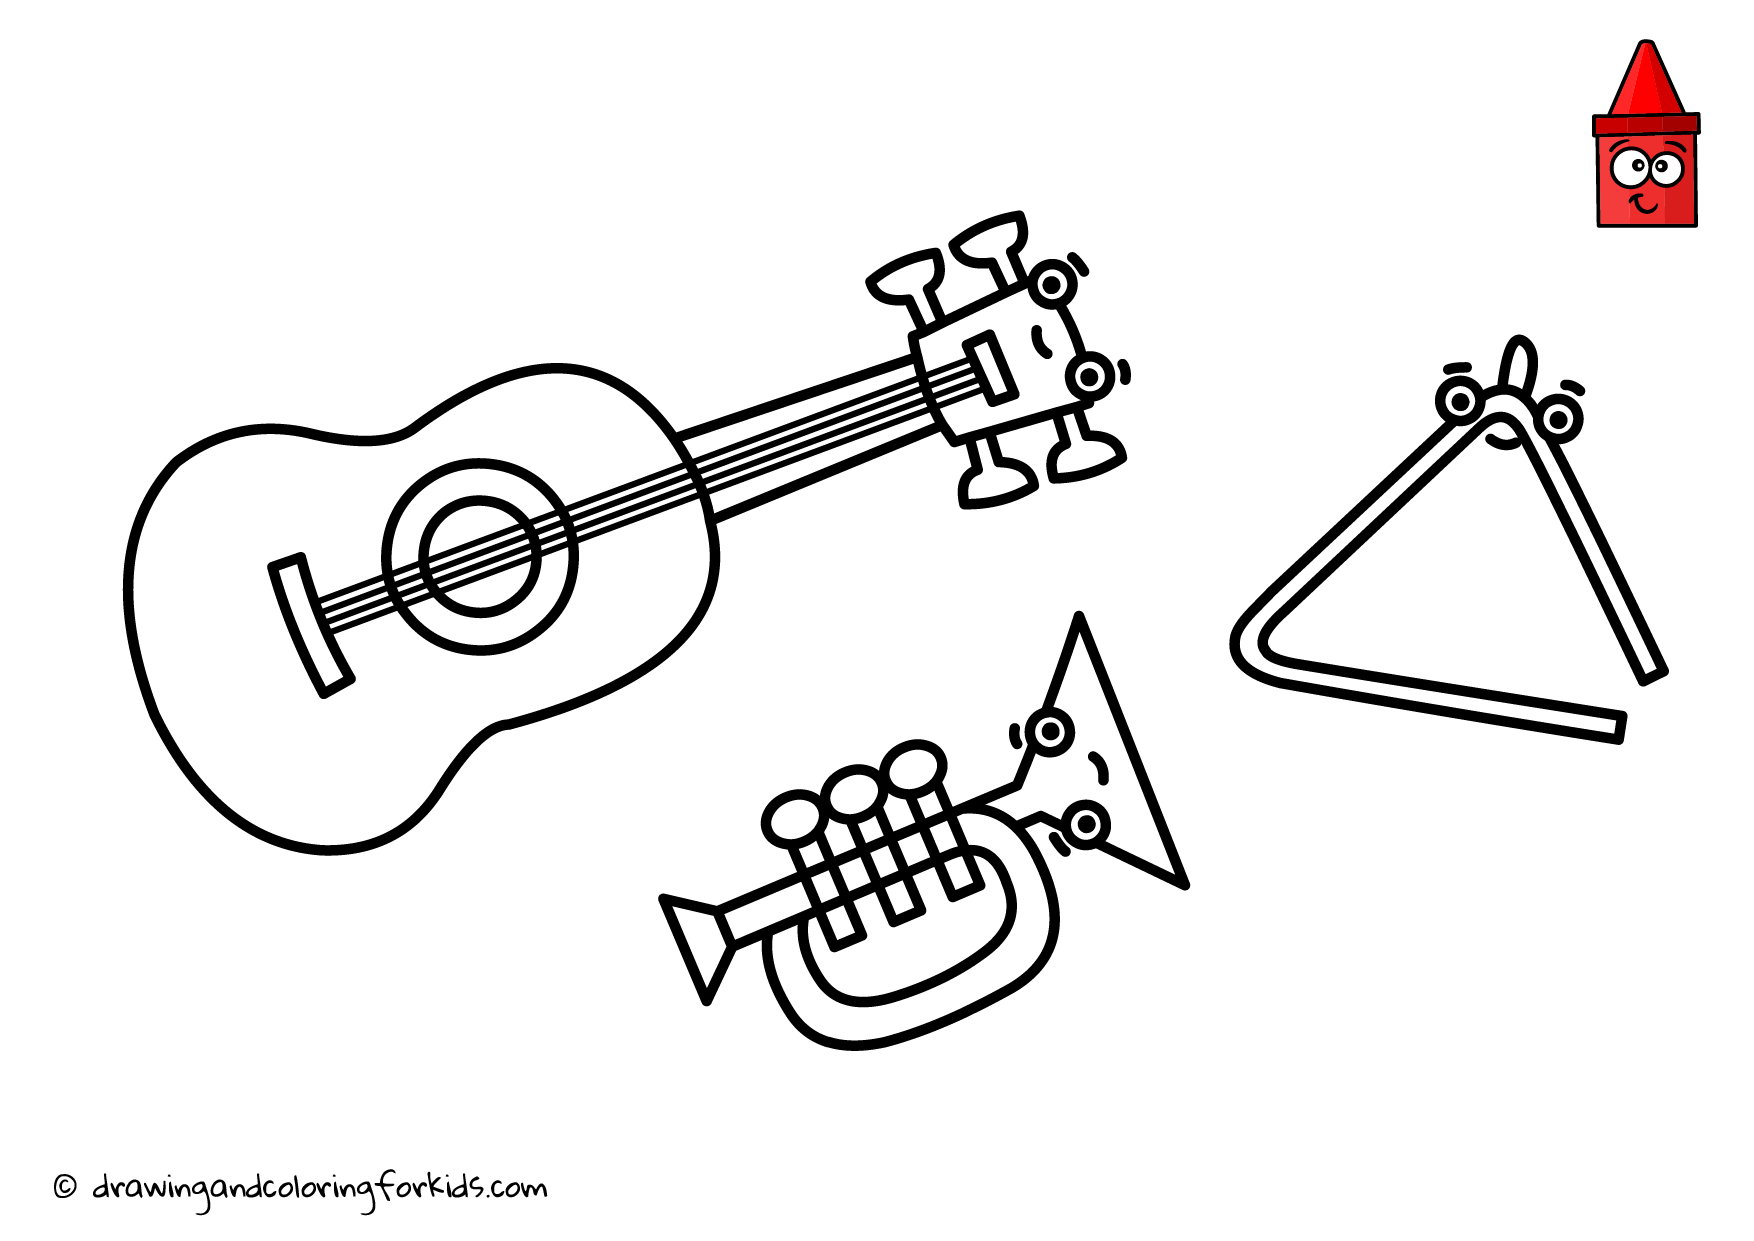 draw musical instruments | colored instruments | musical instruments